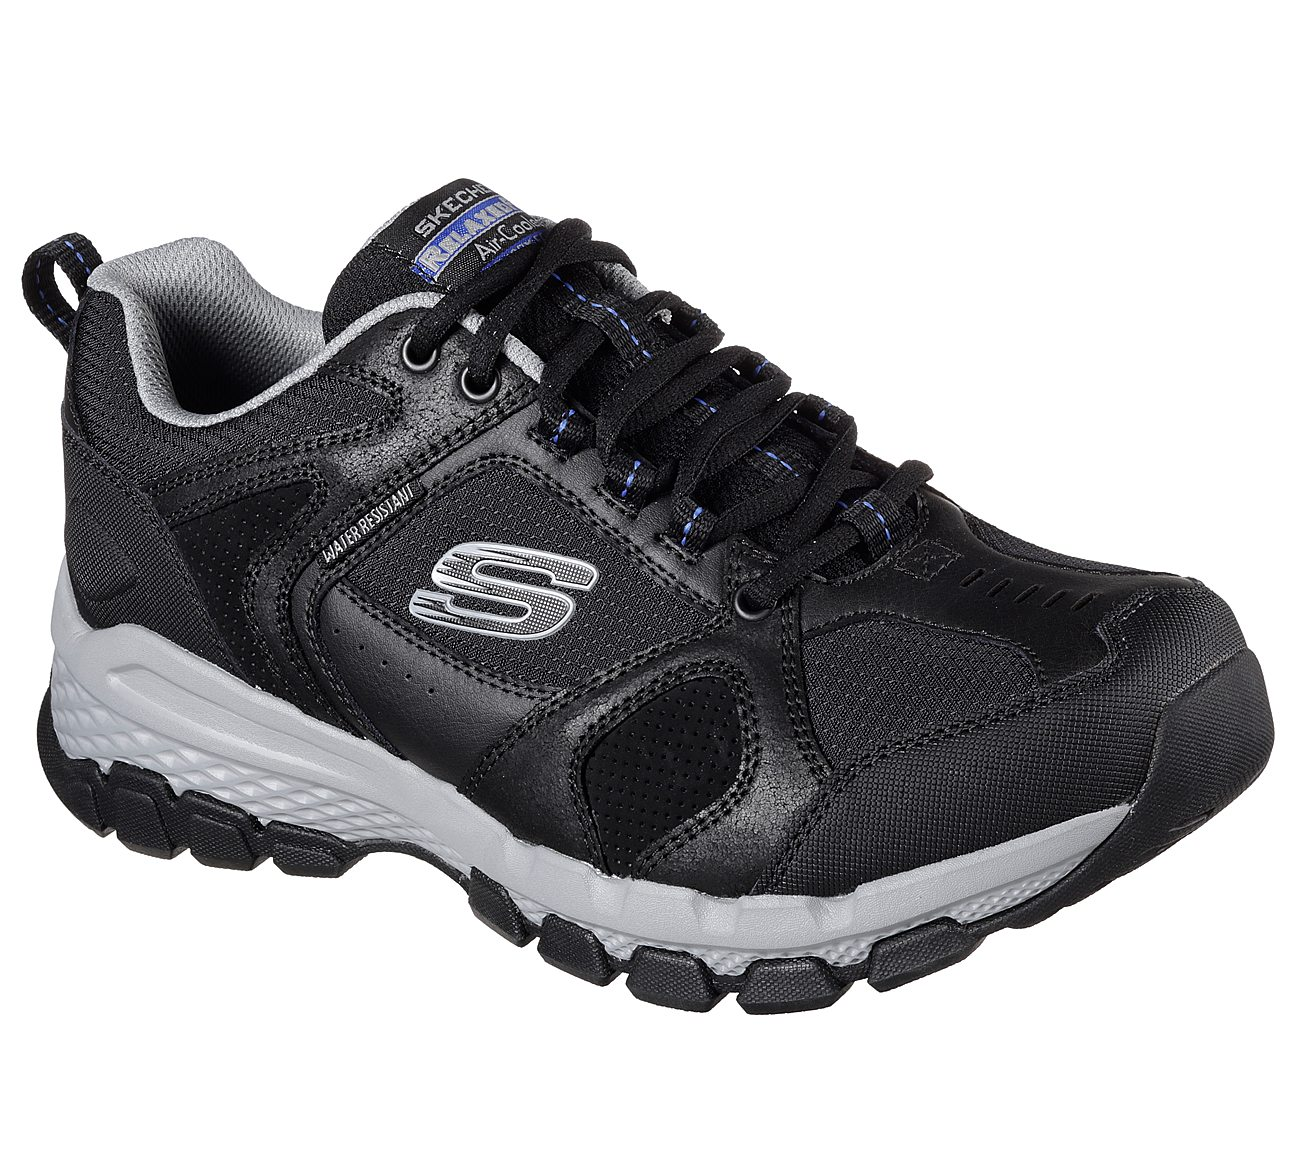 skechers 2nd take camo